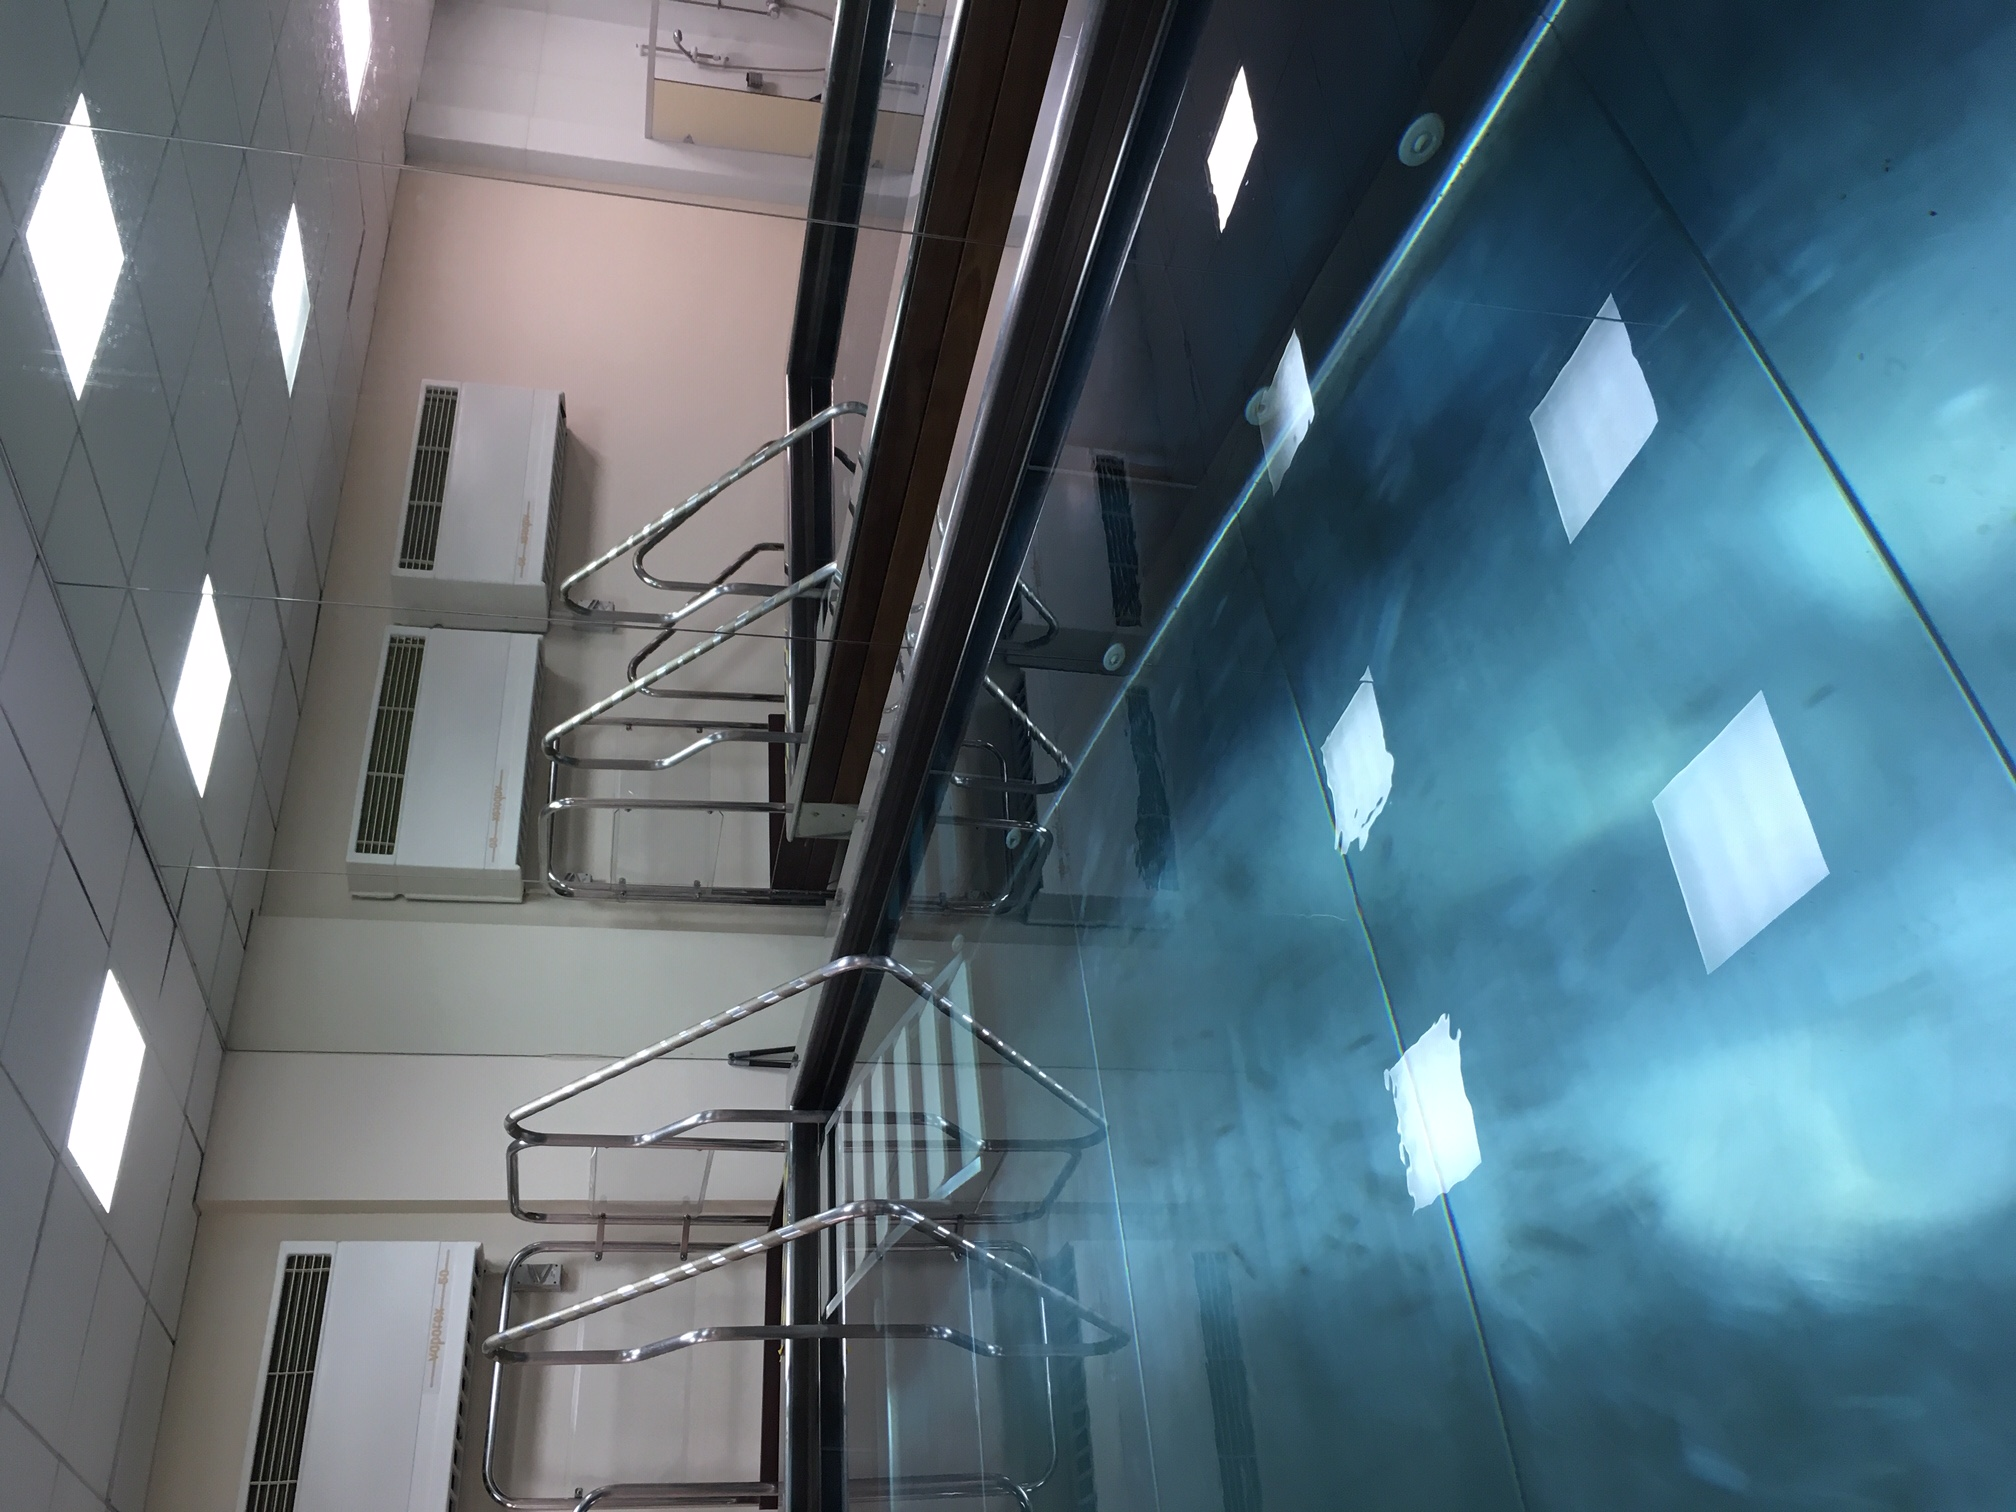 hydrotherapy pool st johns wood